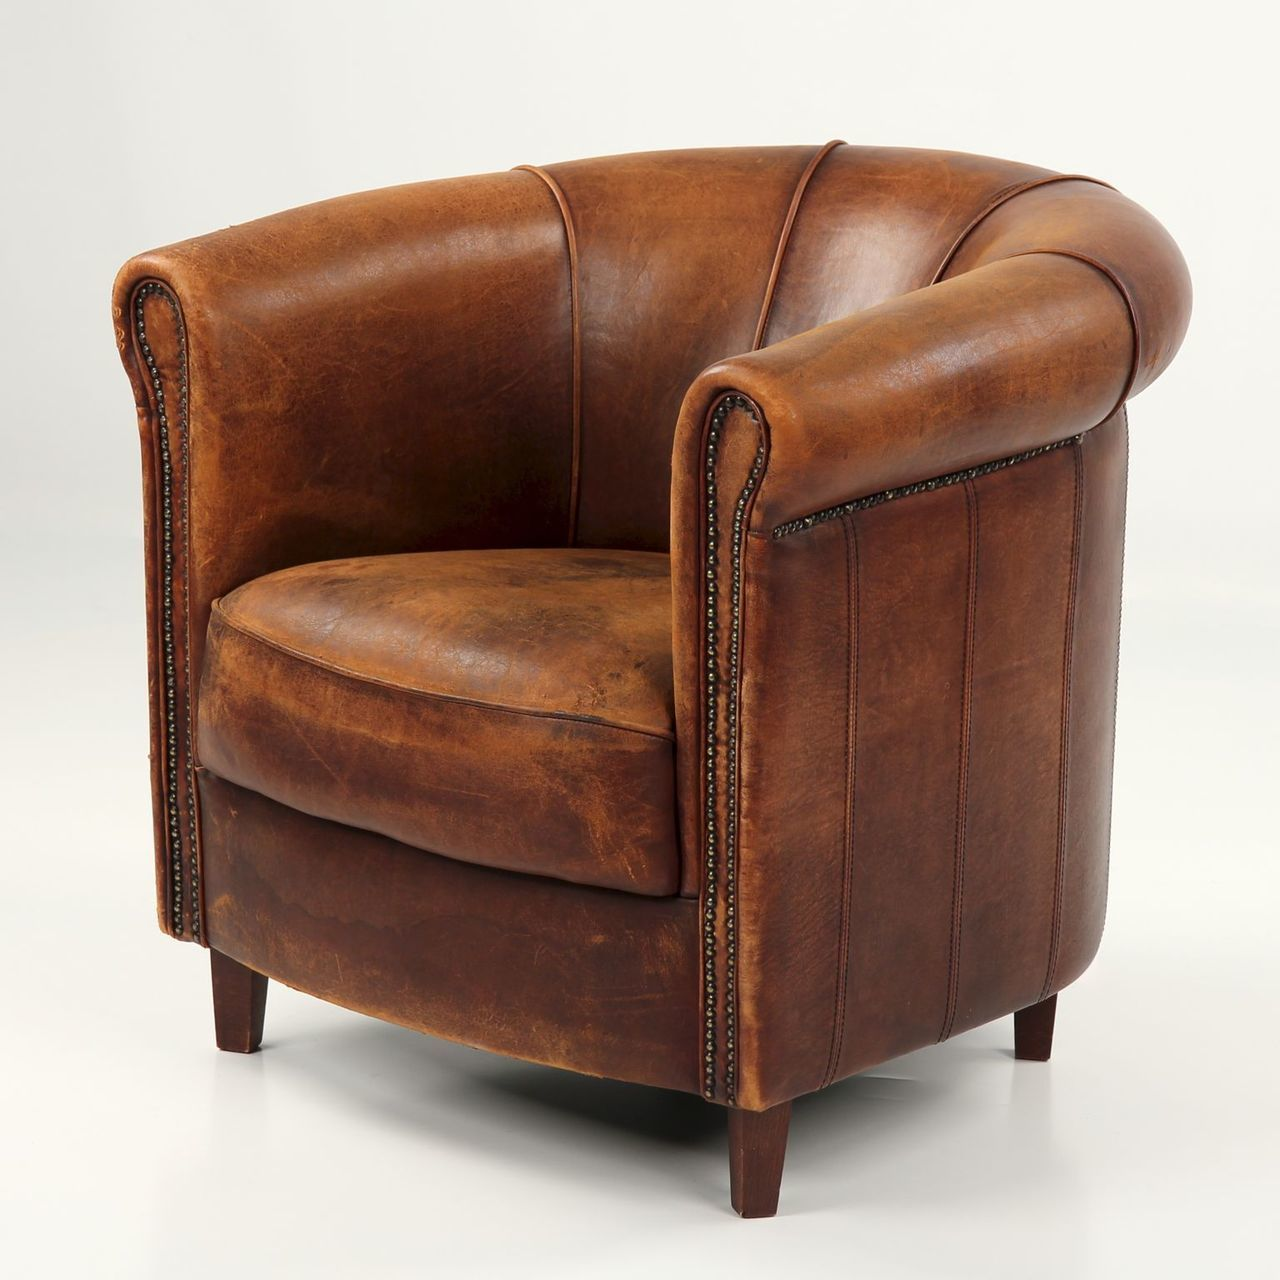 Image result for antique club chair - Image Result For Antique Club Chair Cohen House Pinterest